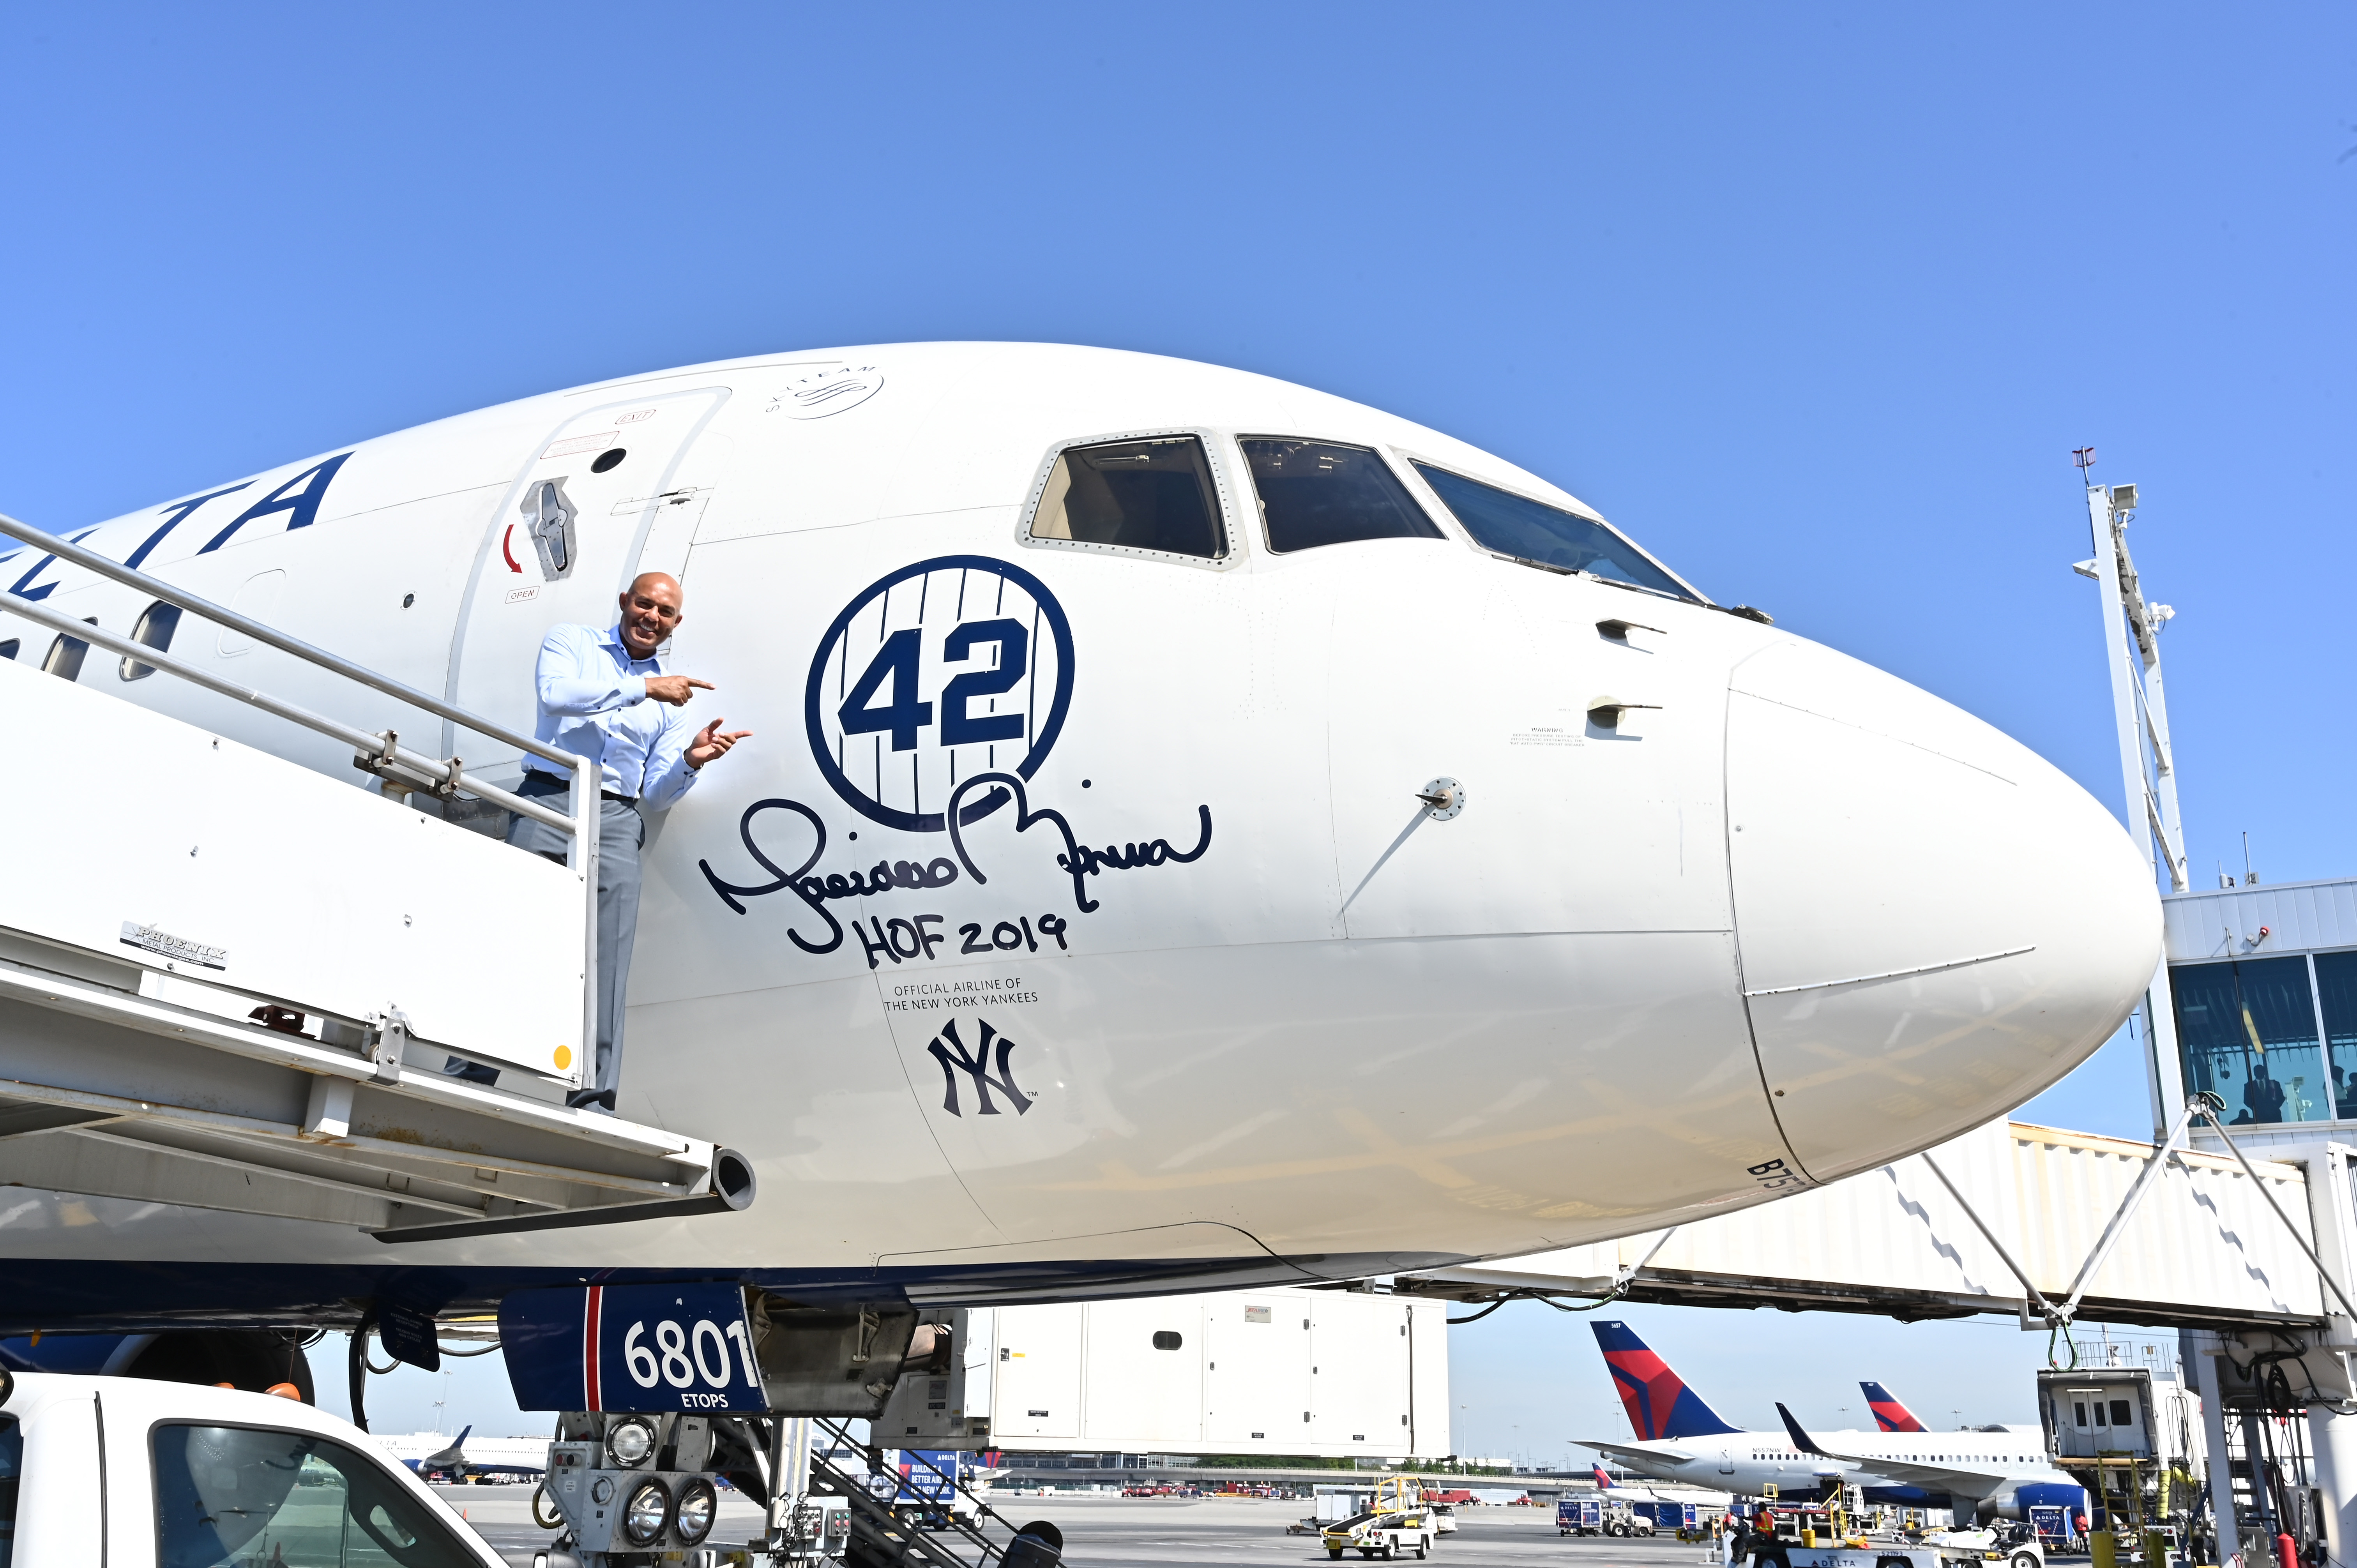 Delta Air Lines Dedicates 757 Aircraft and Terminal 4's Gate 42 At JFK Airport To Mariano Rivera Before Hall Of Fame Induction